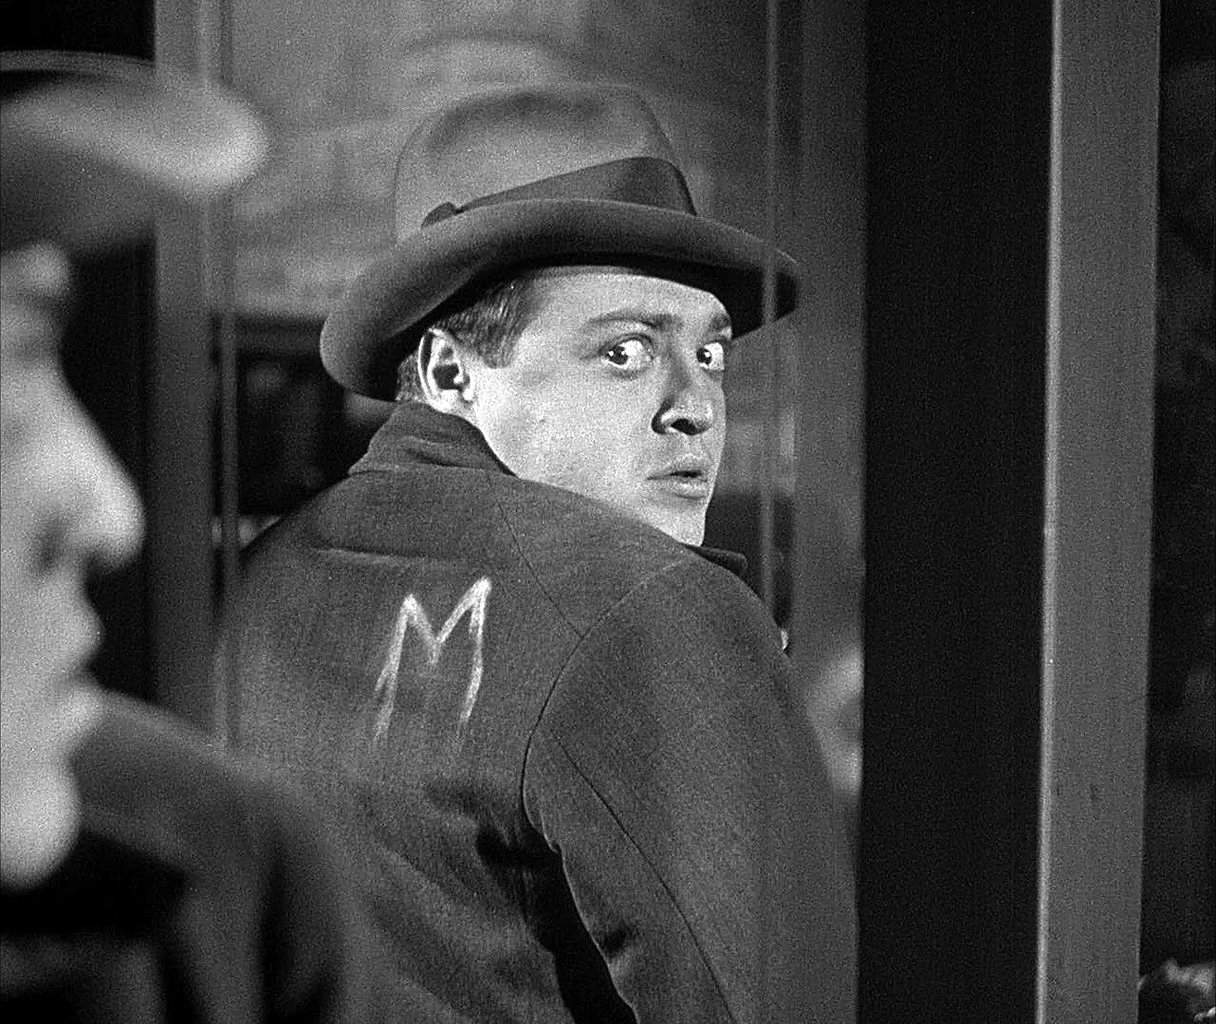 film reviews | movies | features | BRWC It's A Wonderful List Kicks Off With A Review Of M (1931)